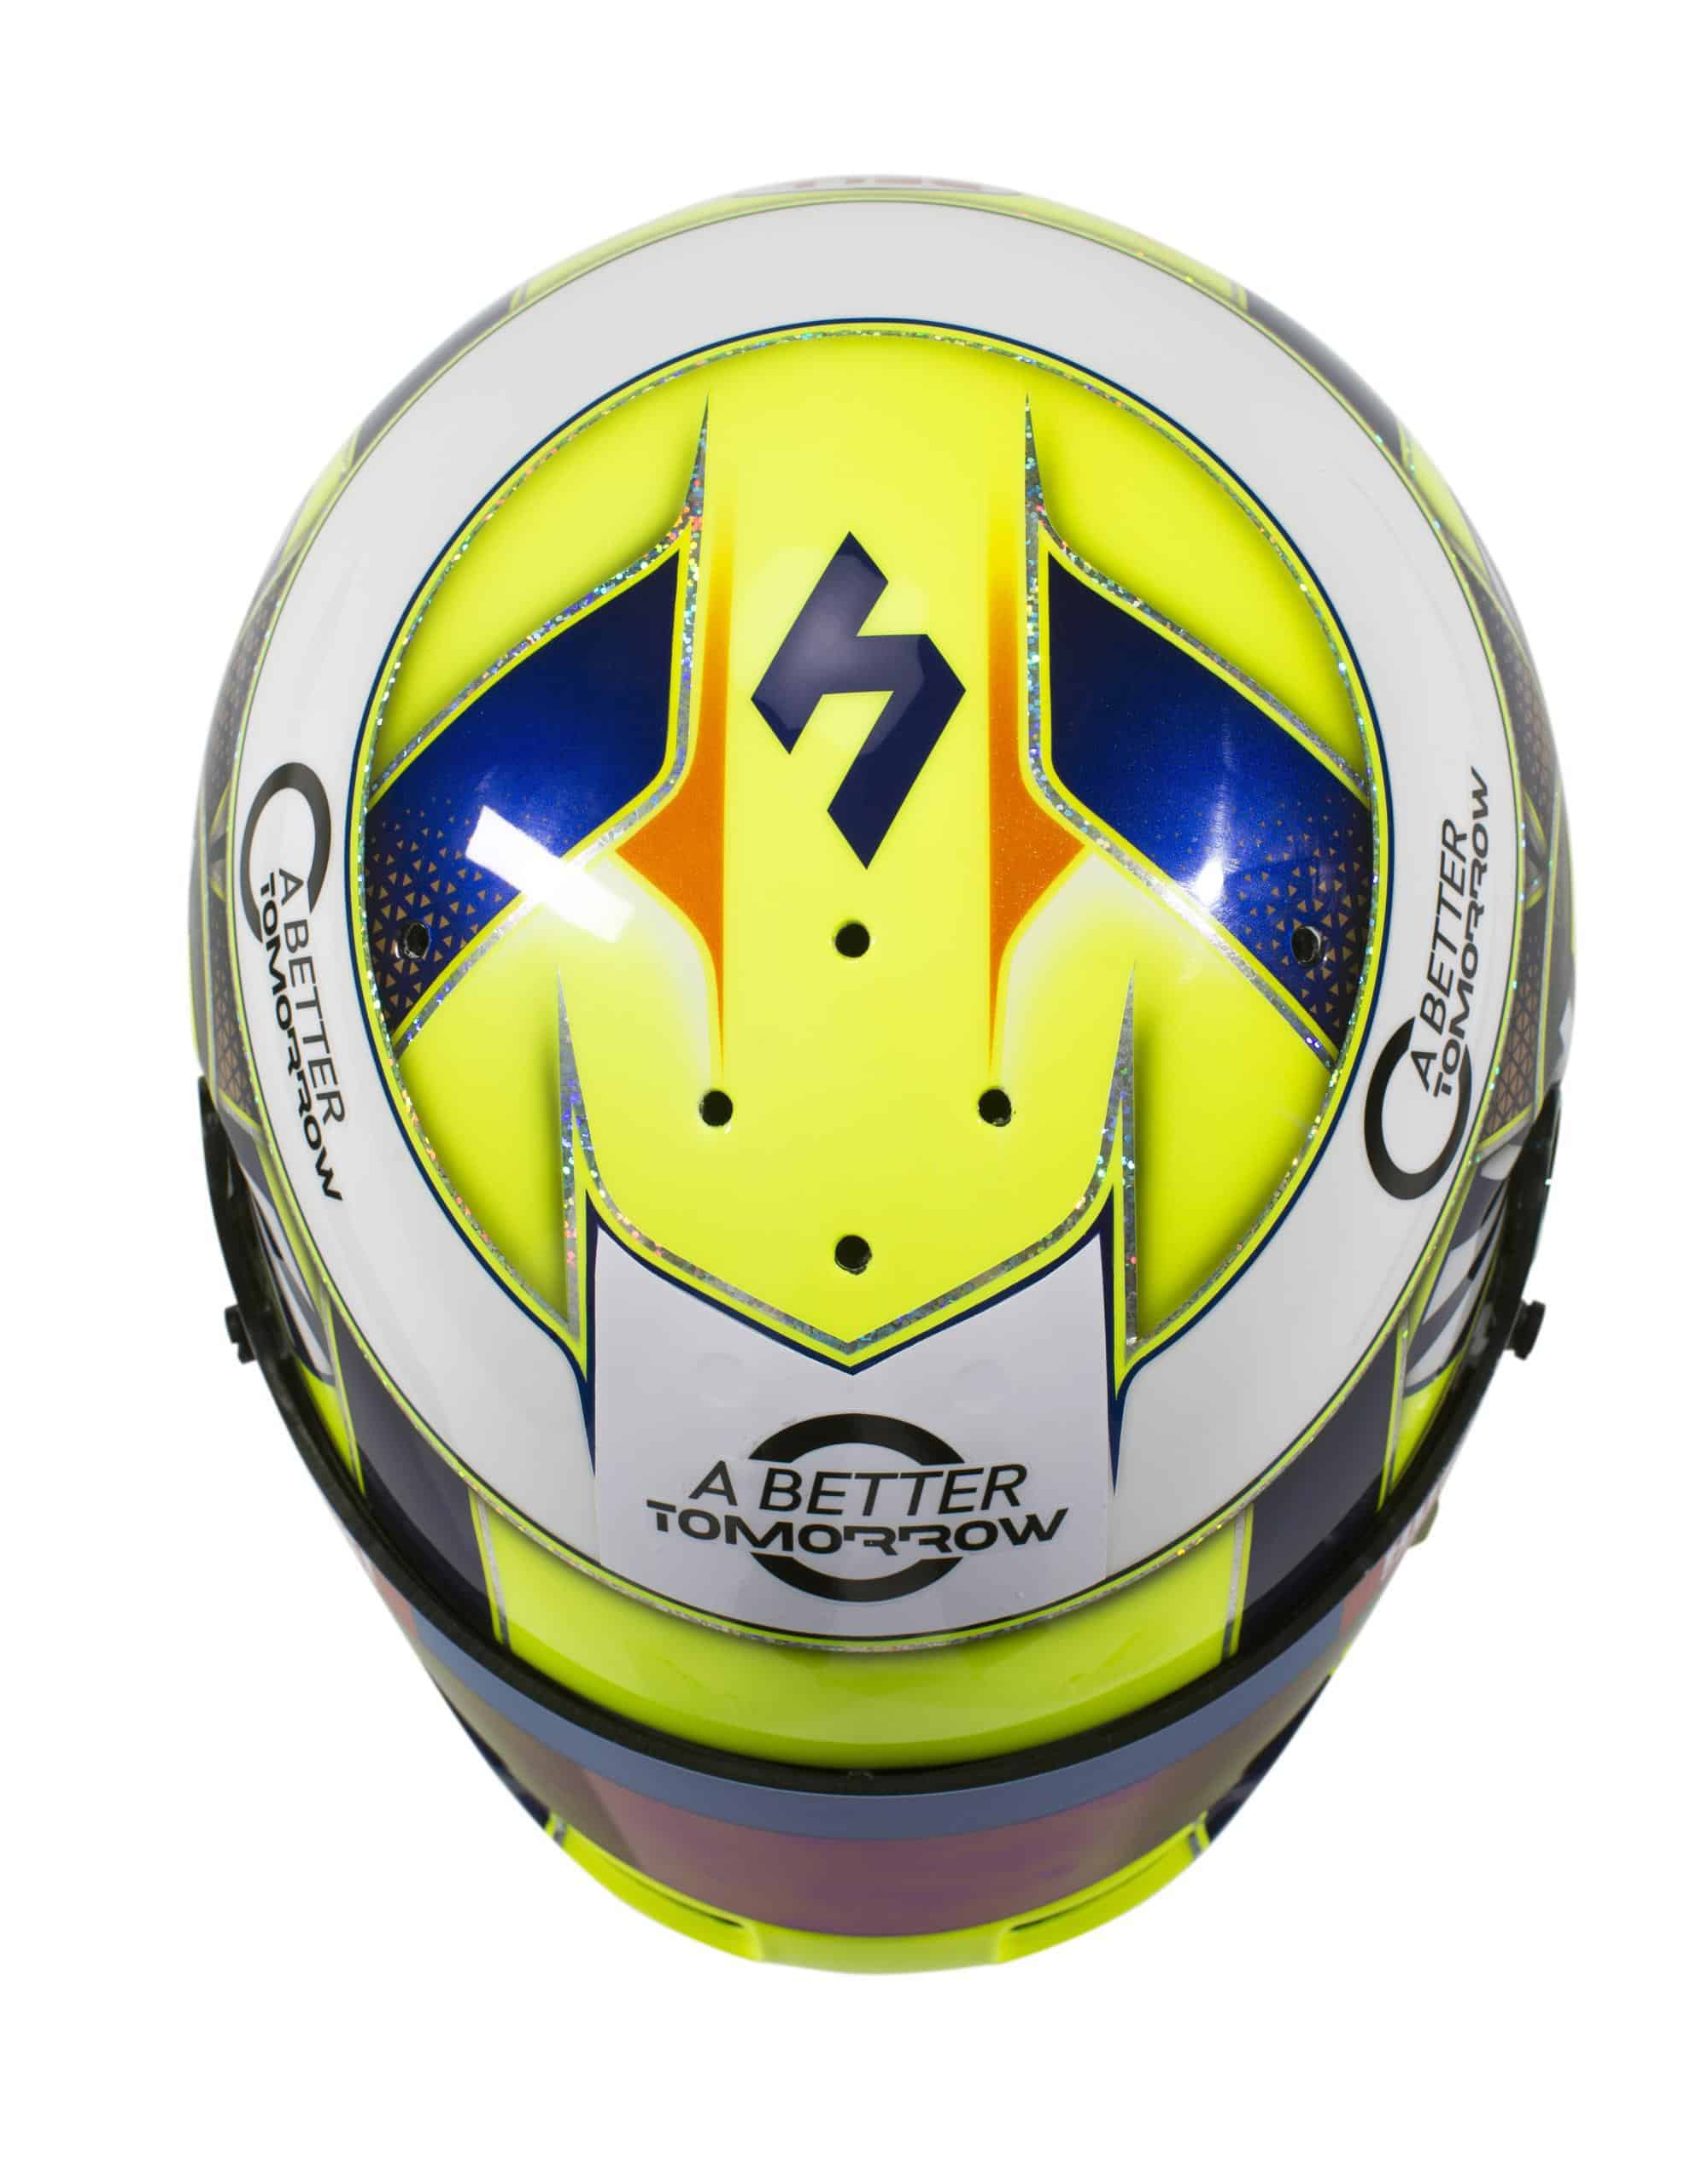 2019 F1 Lando Norris helmet McLaren Renault top Photo McLaren Edited by MAXF1net